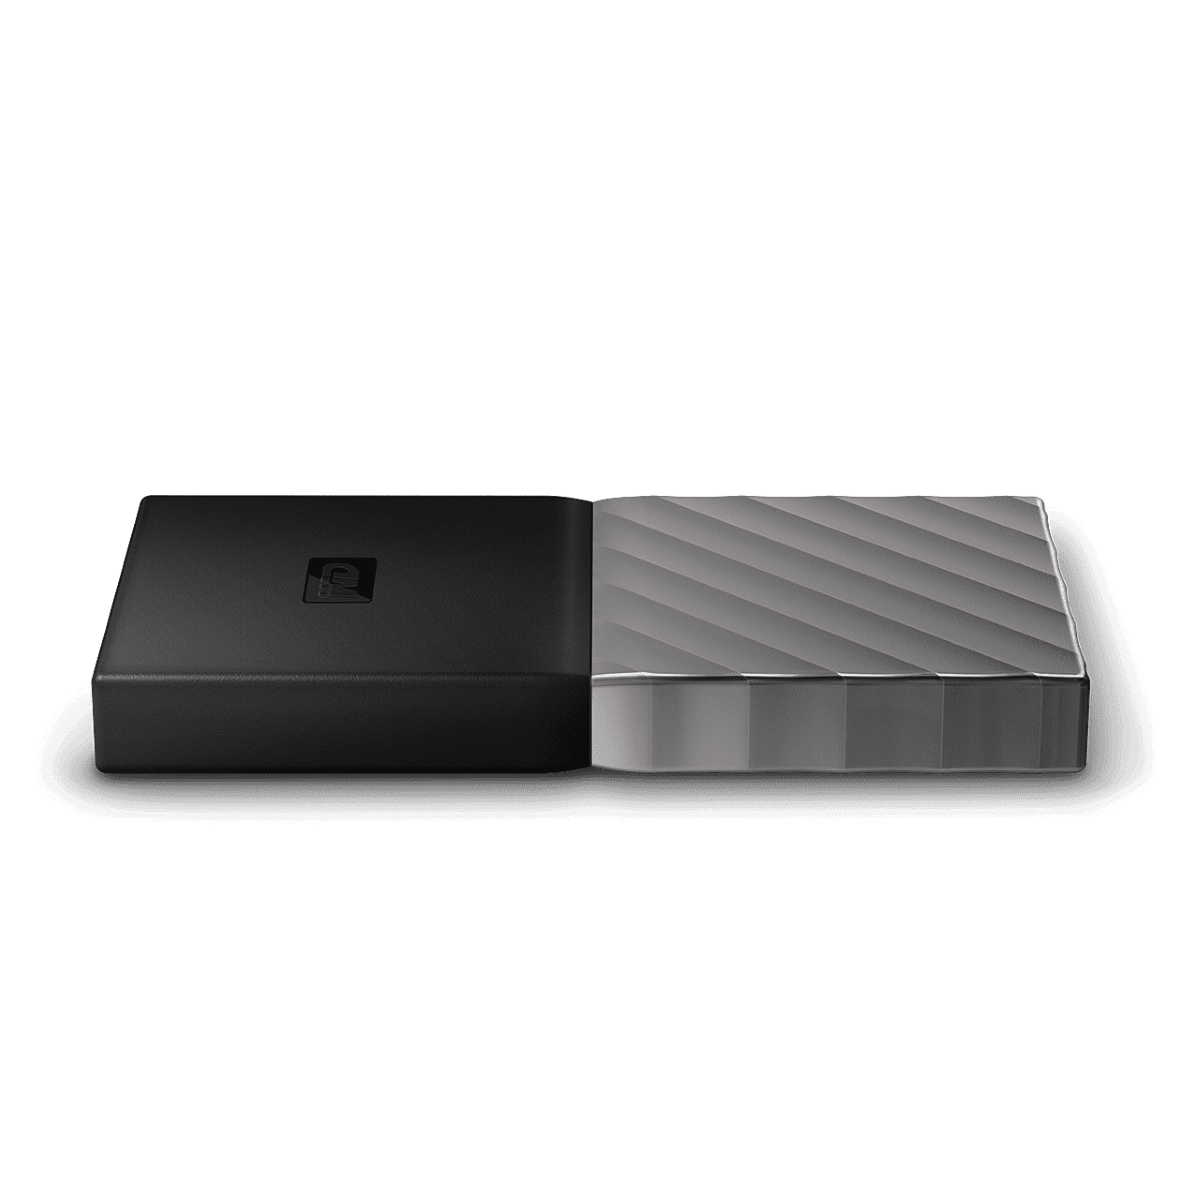 Western Digital My Passport SSD - Minimalist Rugged Design